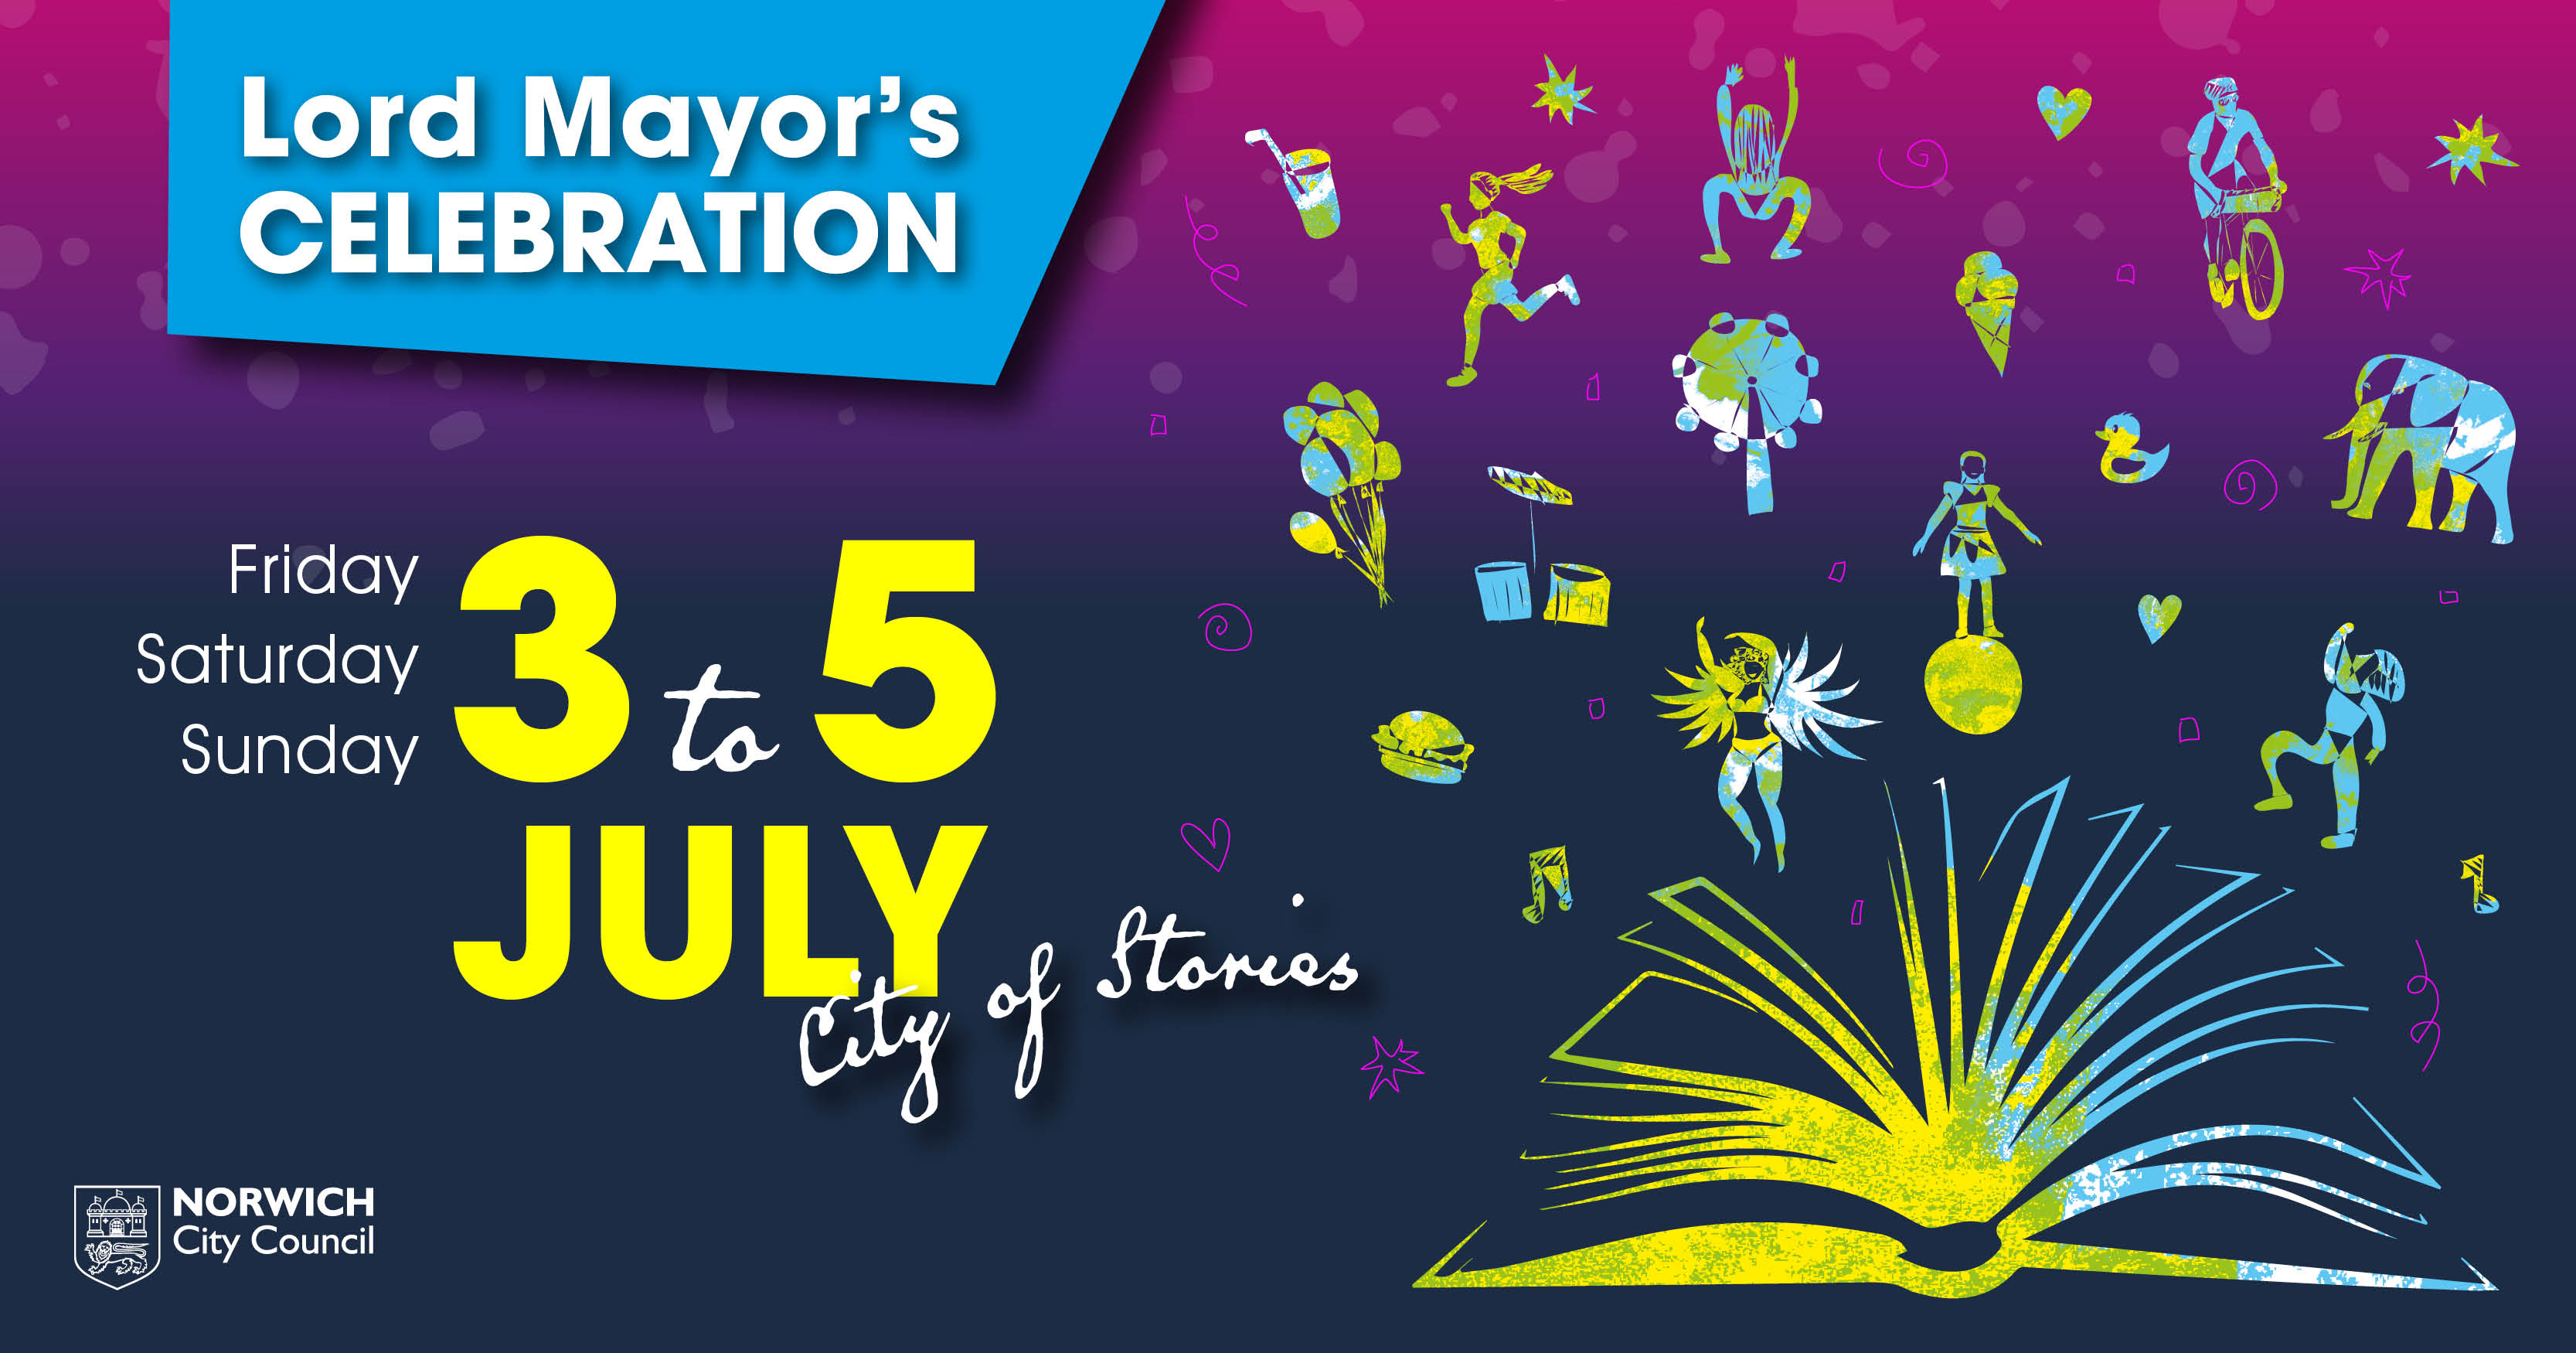 The Lord Mayor's Celebration will highlight local talent, showcase the city's history and identity, and offer a host of free activities to choose from when it returns this July.